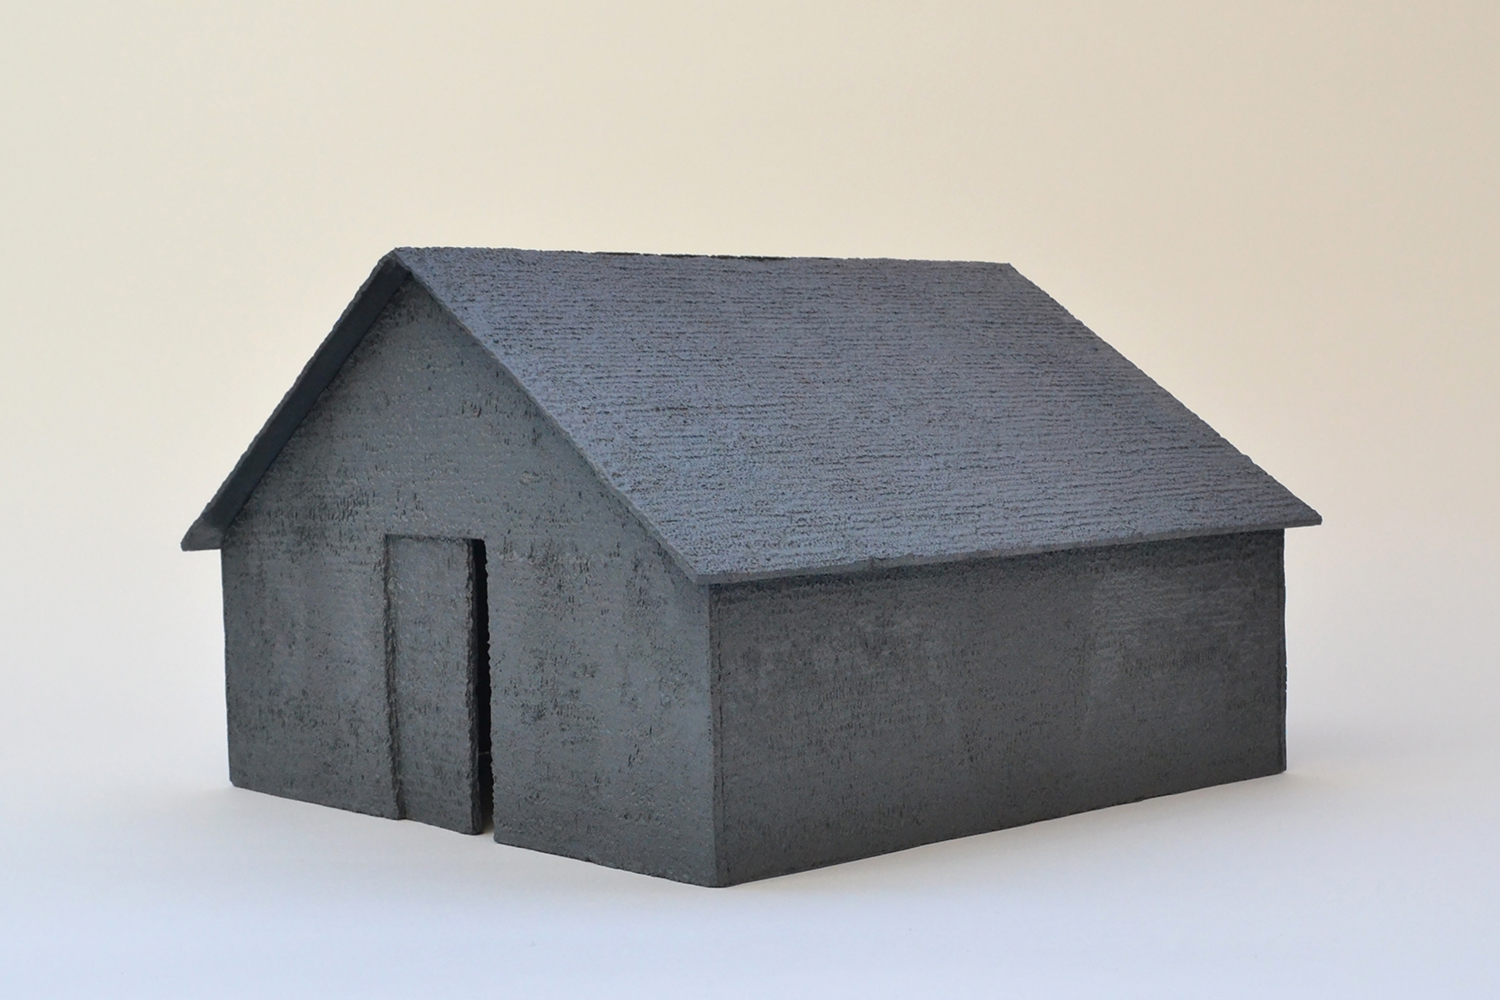 house|cast iron|325 x 325 x 210 mm|2017